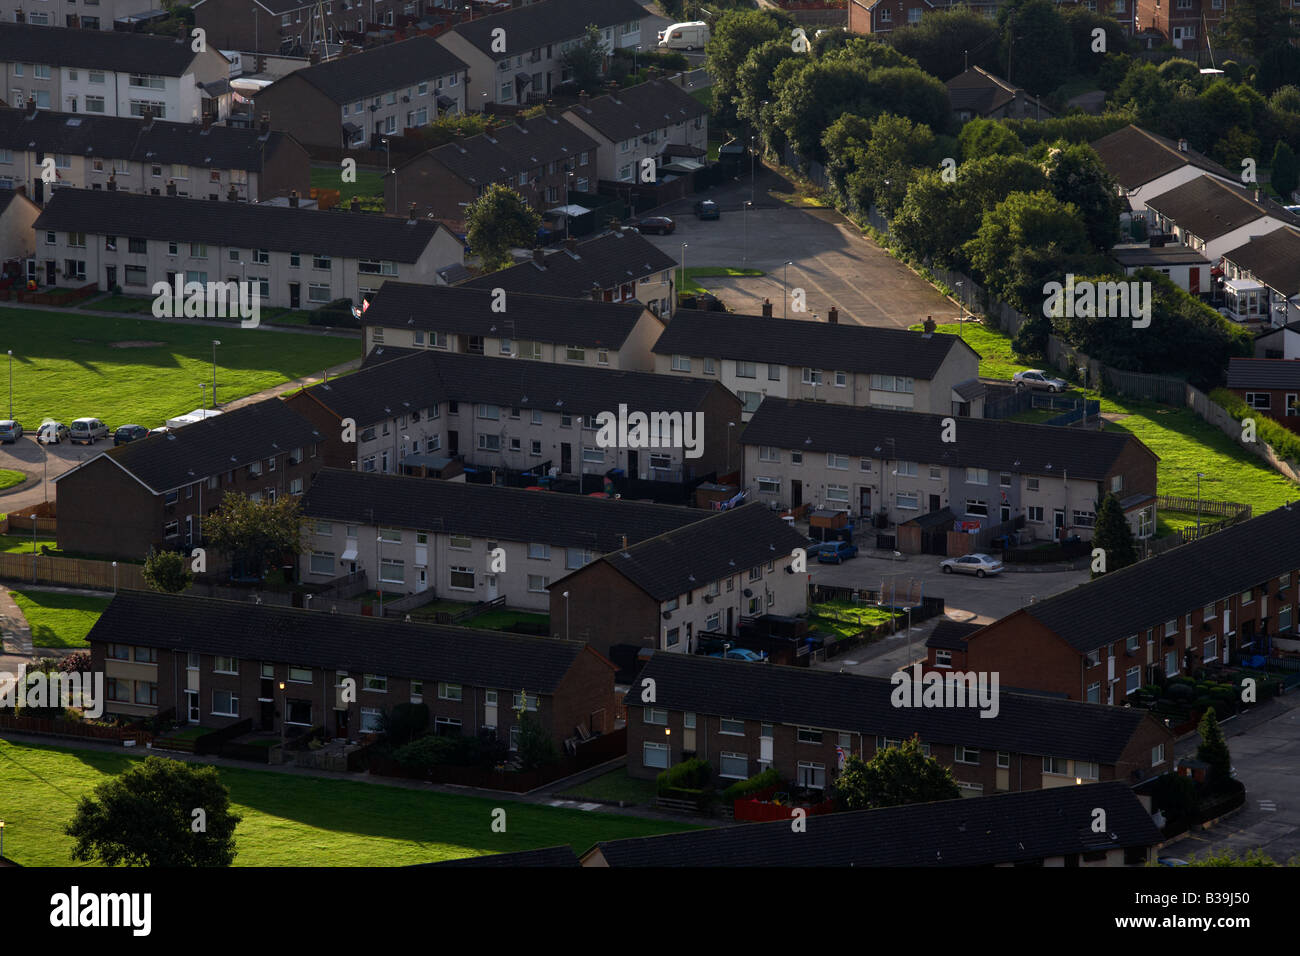 local housing authority council estate houses in newtownards county down northern ireland - Stock Image